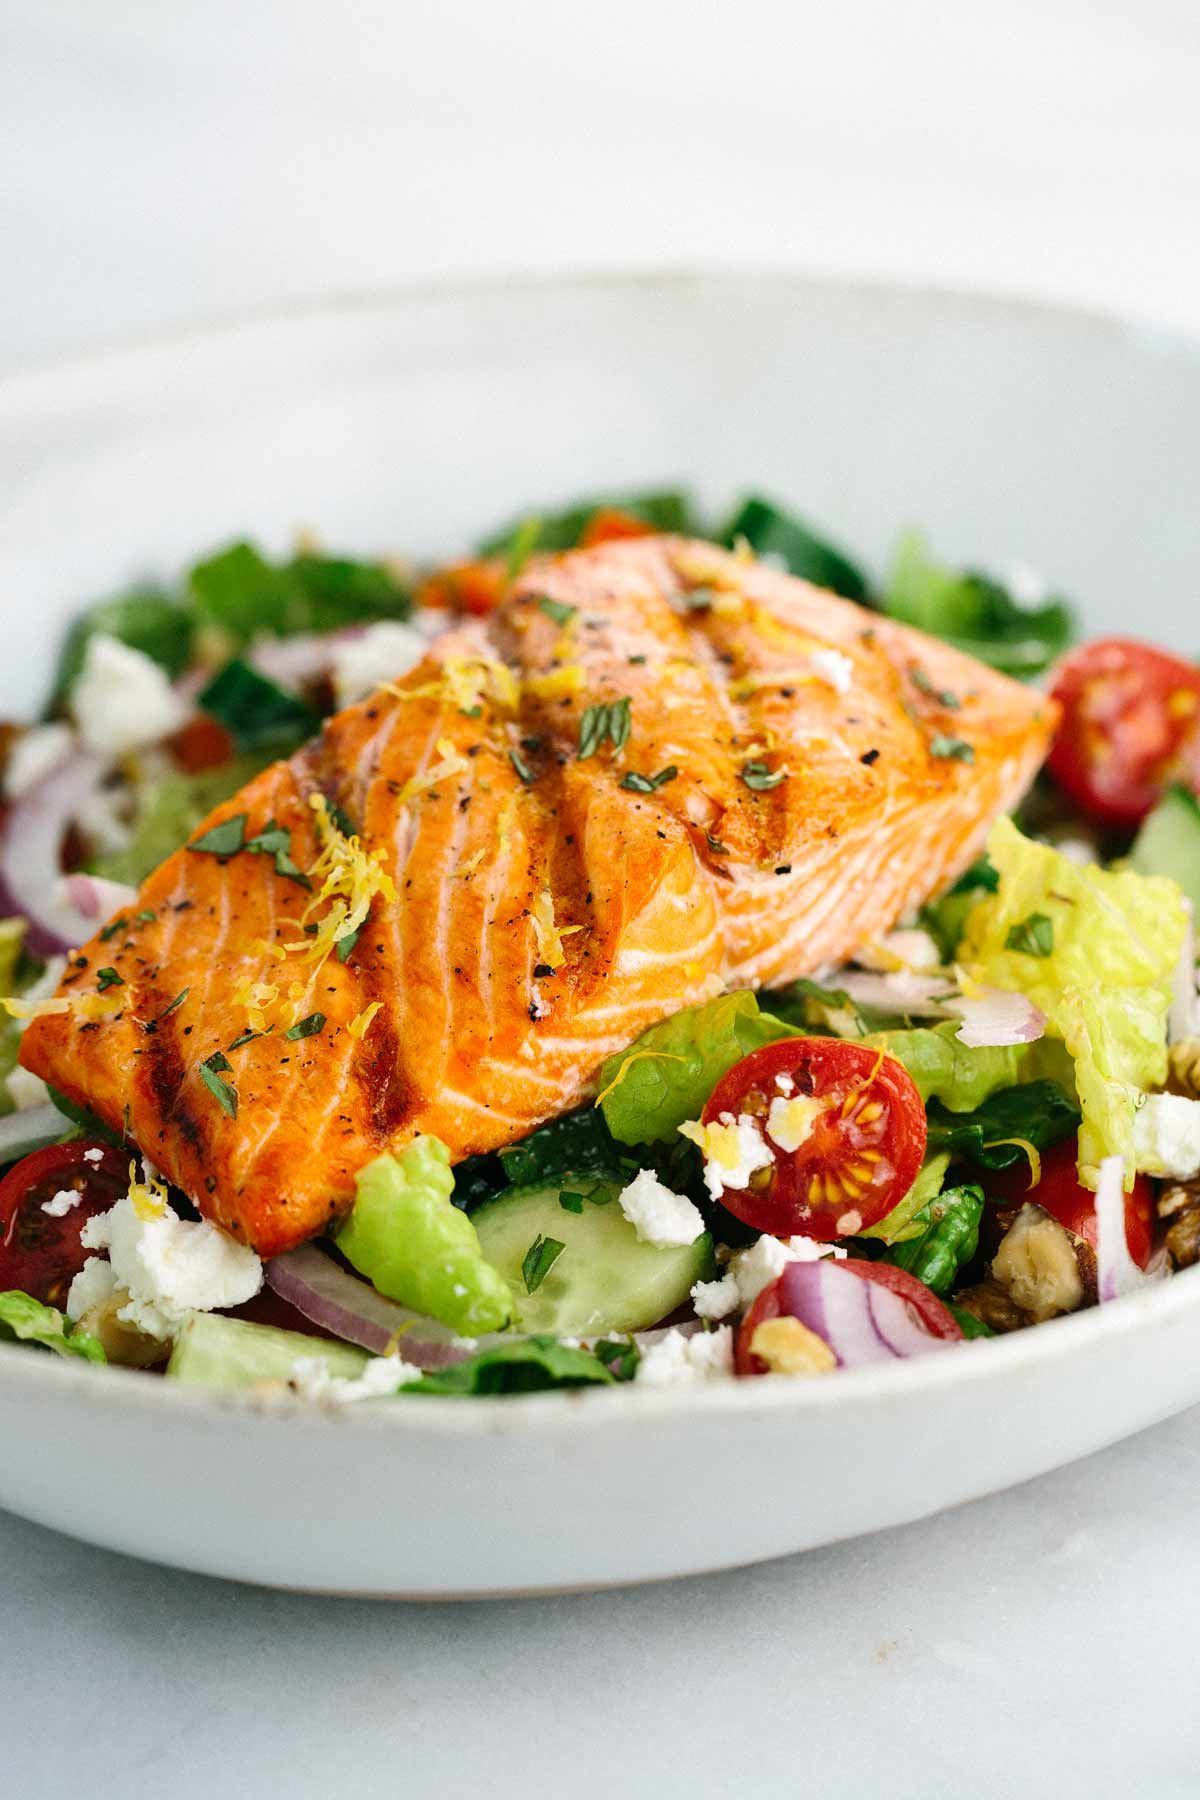 Smoked Salmon Salad Recipes Healthy  The 25 best Salmon salad recipes ideas on Pinterest